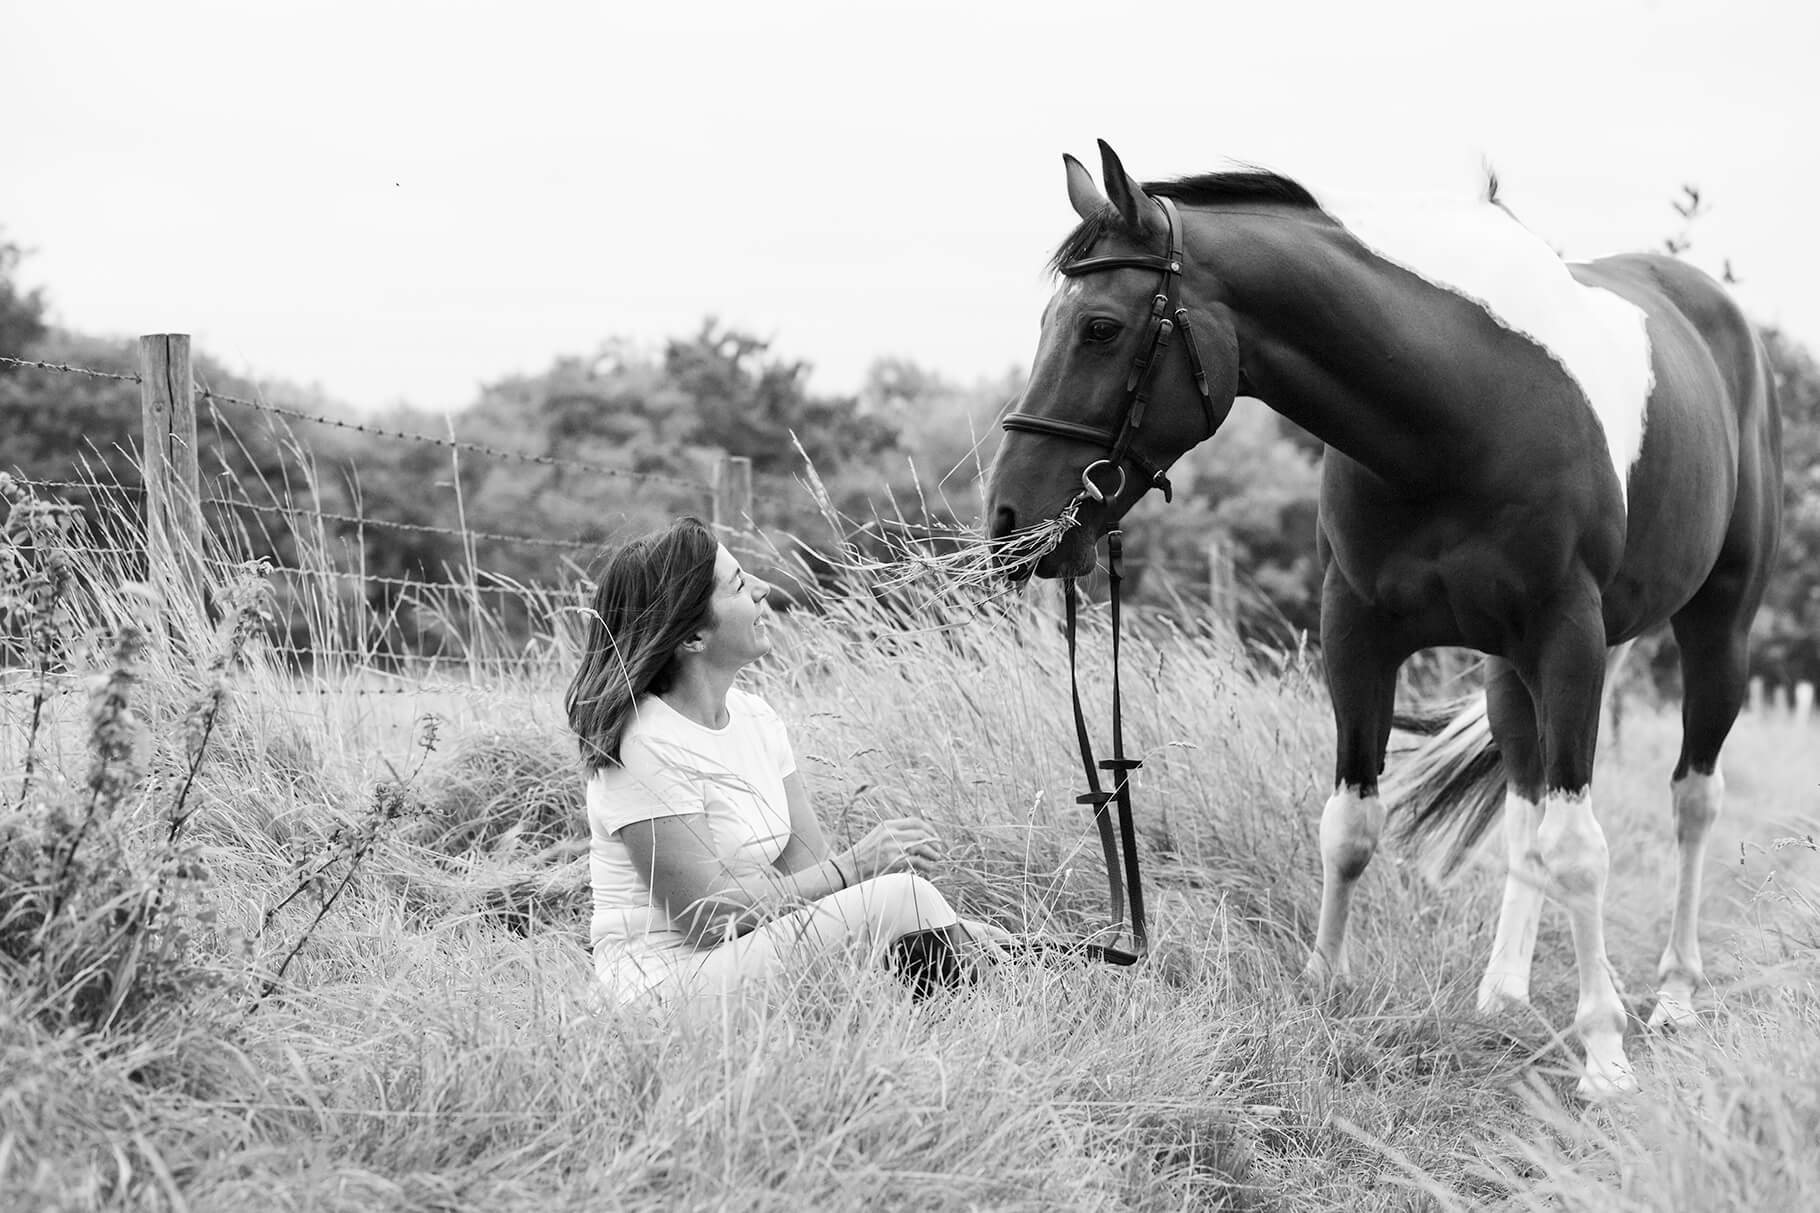 A black and white image of a horse and it's owner taken outside in nature